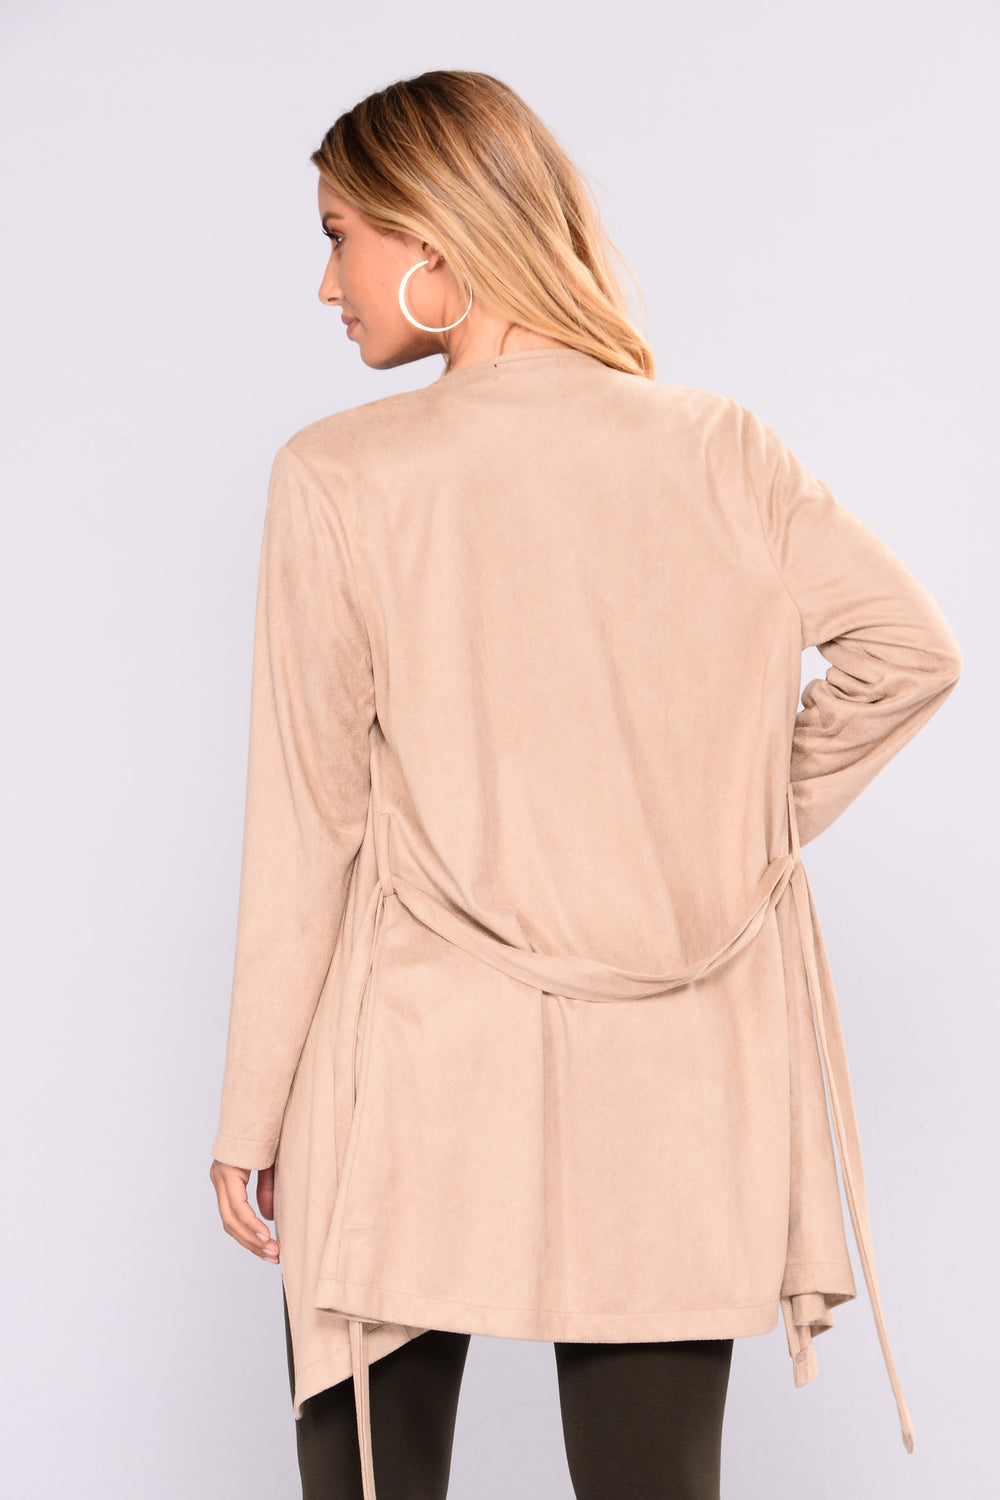 Give Me Time Suede Jacket - Camel